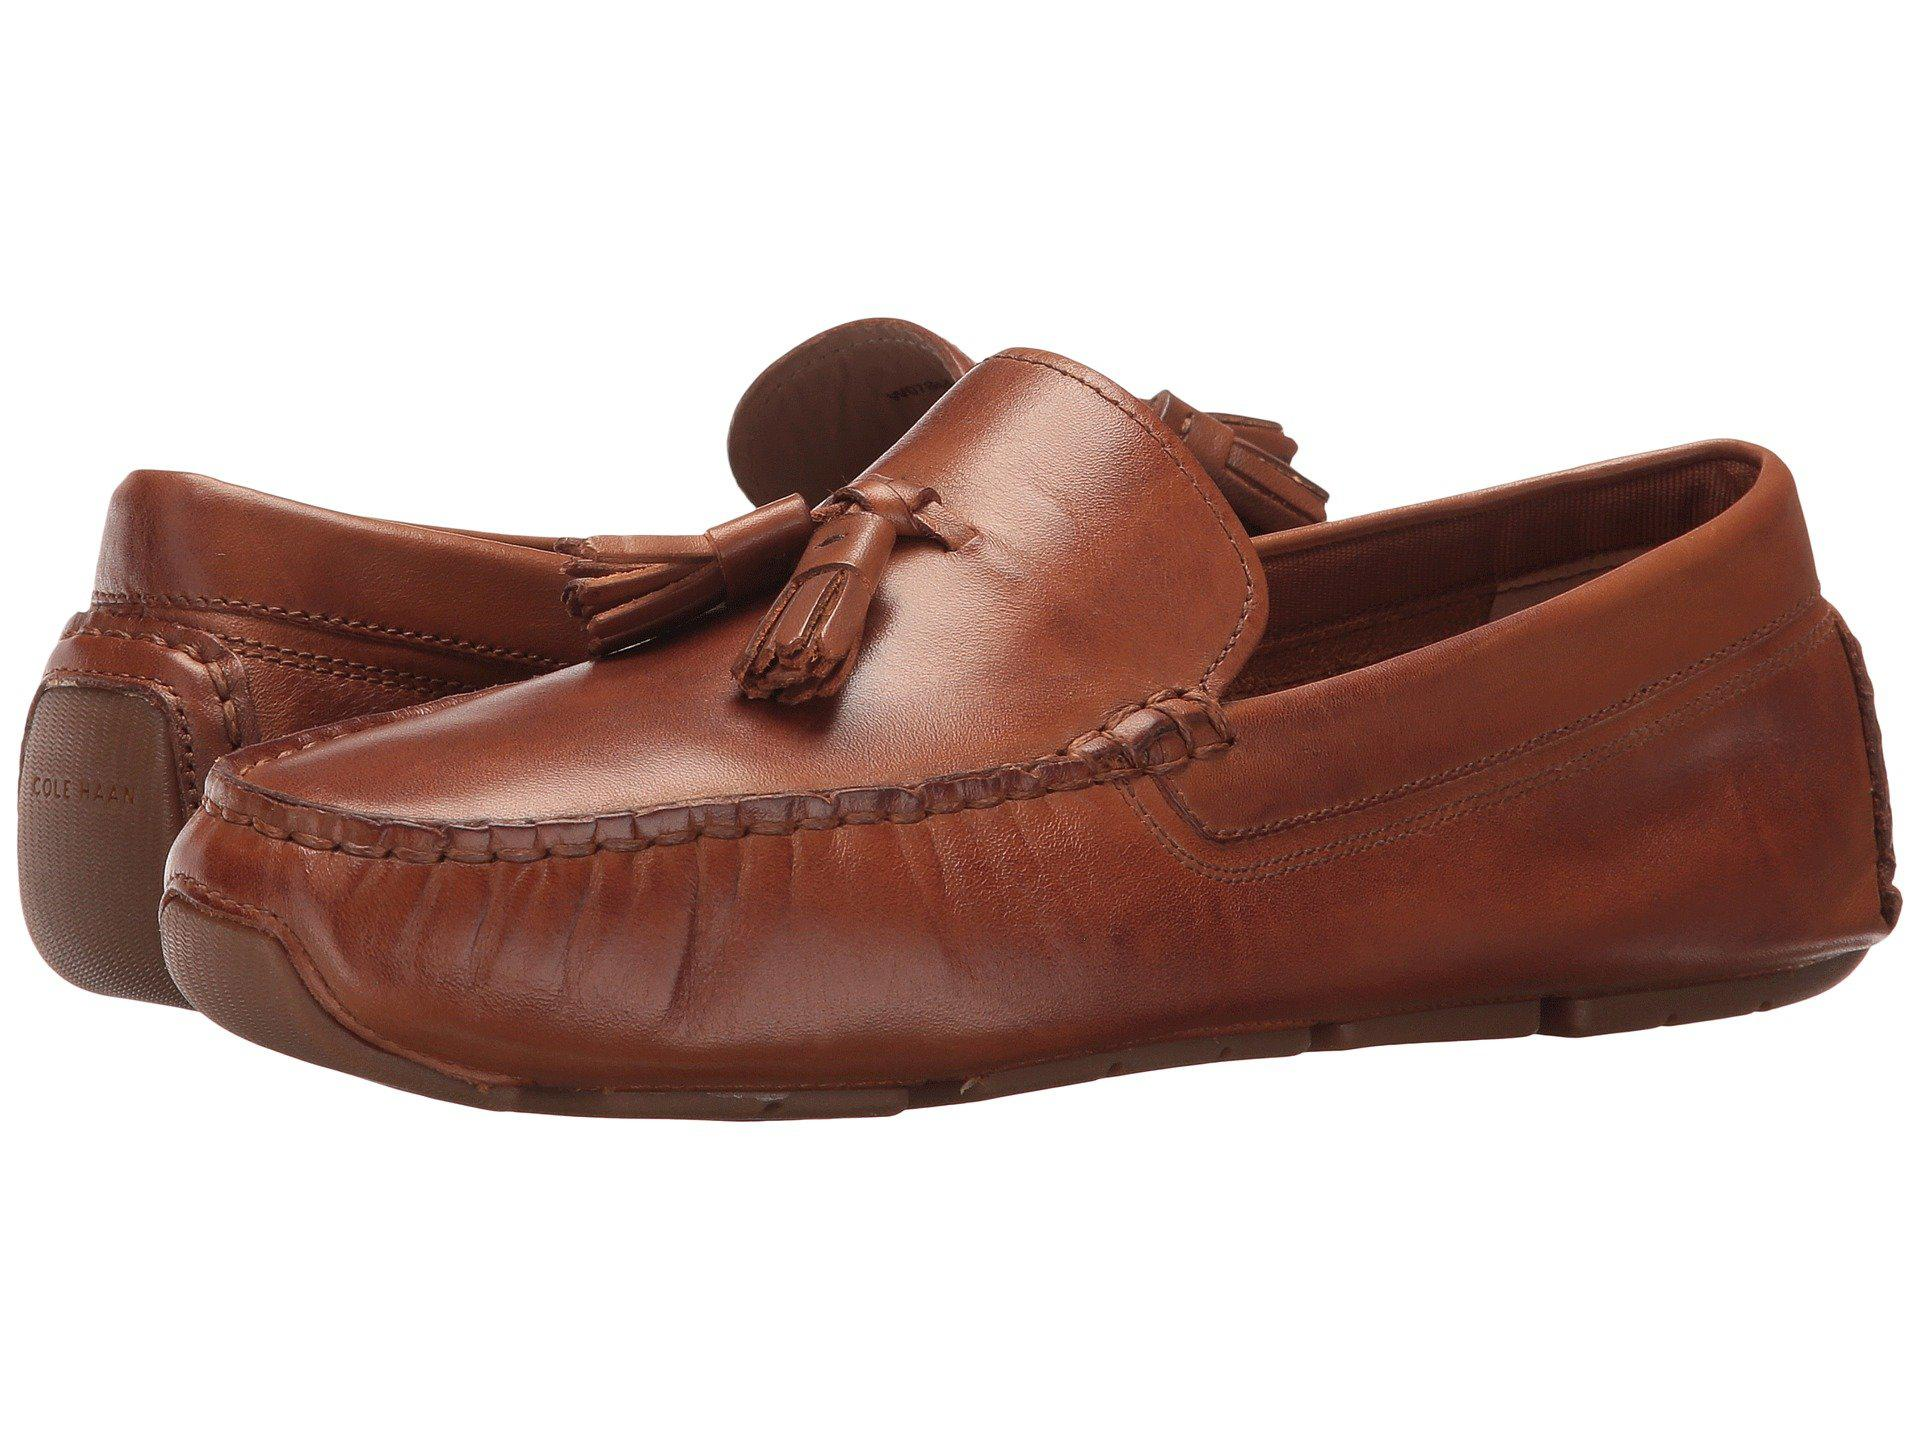 a55d75ec47e Lyst - Cole Haan Rodeo Tassel Driver in Brown - Save 35%